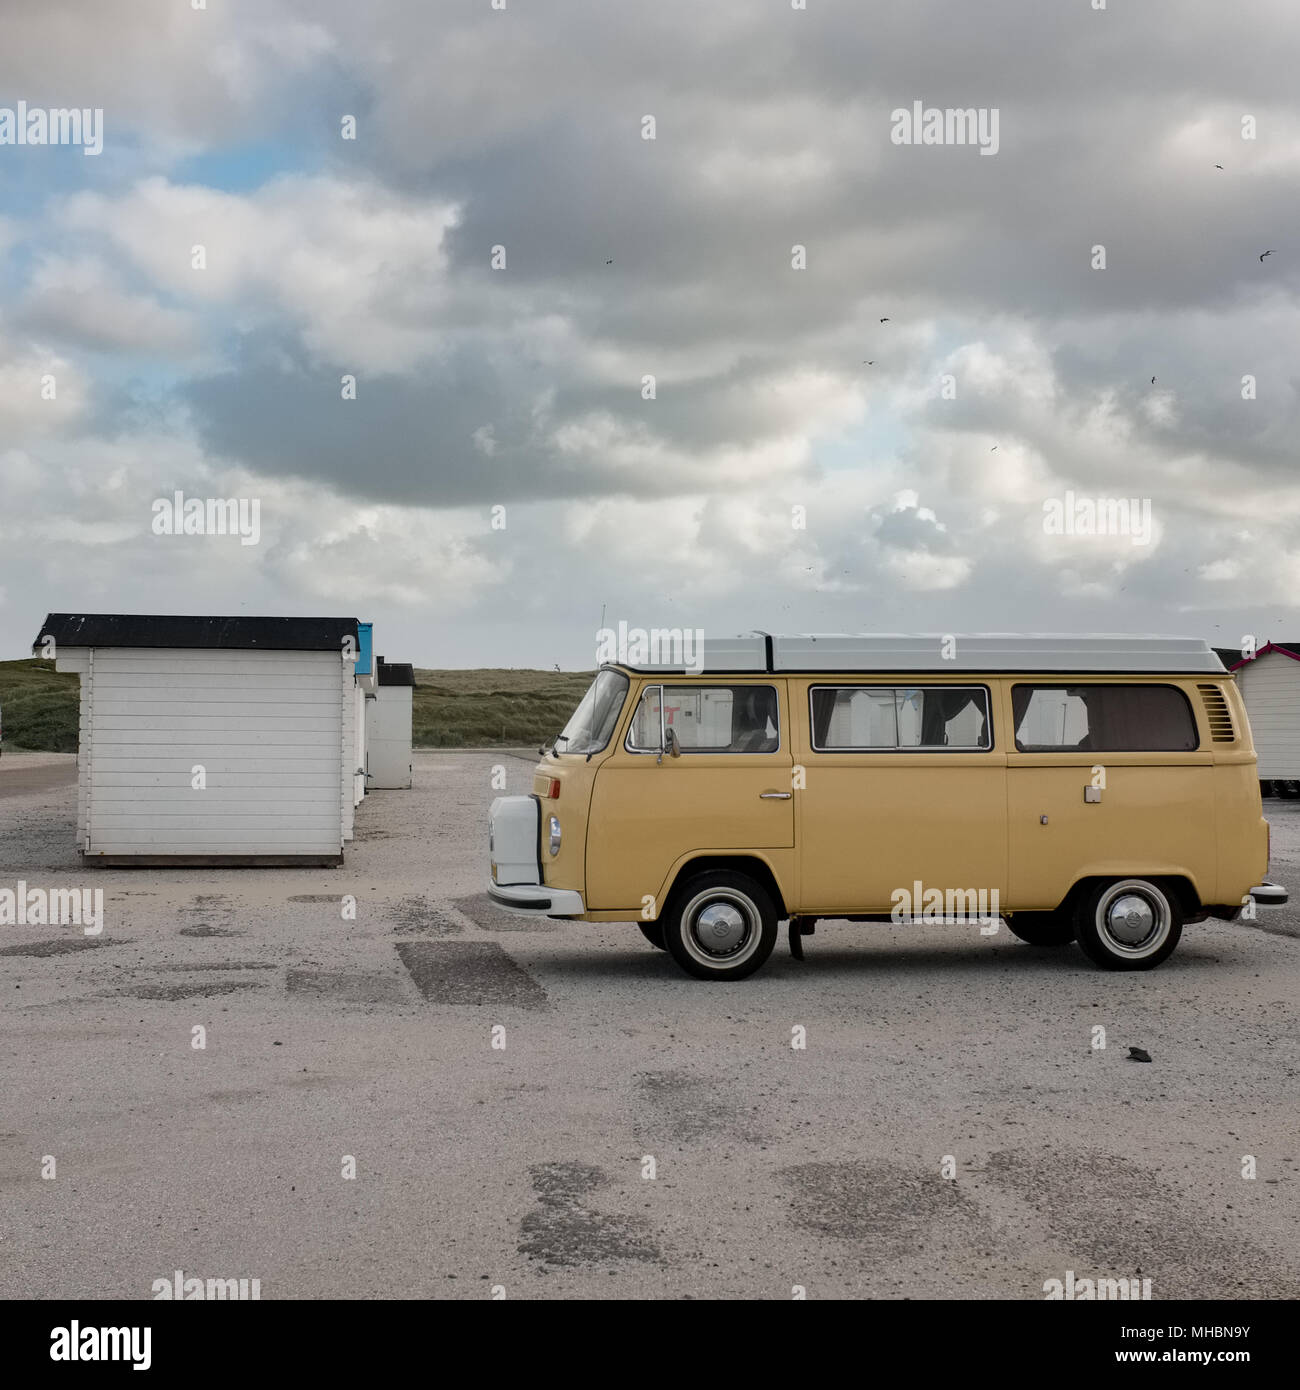 Old Volkswagen van and beach cabins on a deserted beach on Texel, the Netherlands. Stock Photo